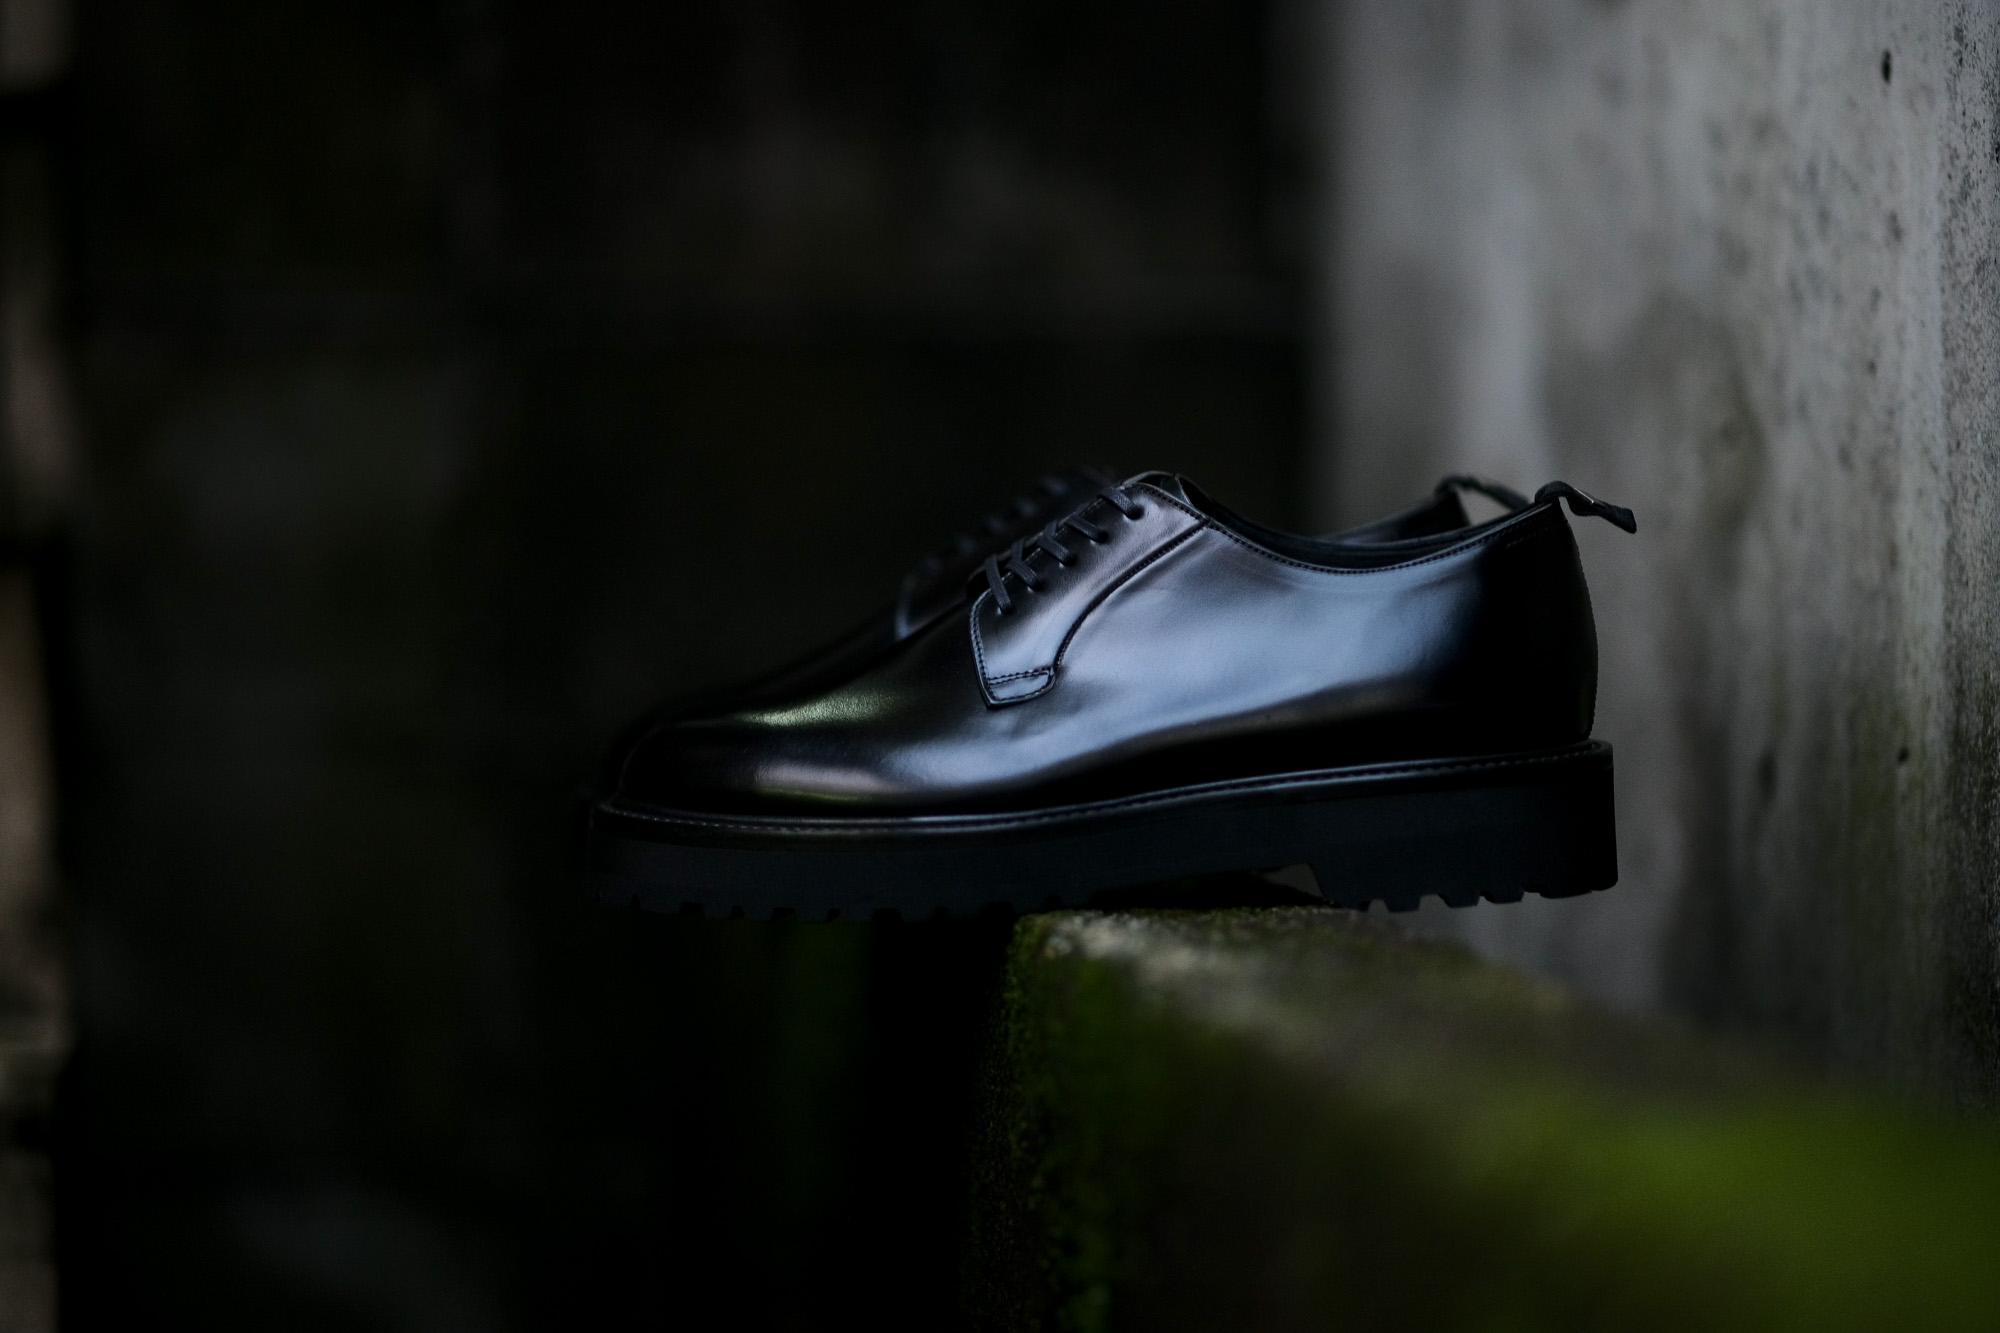 WH (ダブルエイチ) WHS-0010 Plane Toe Shoes (干場氏 スペシャル) Birdie Last (バーディラスト) ANNONAY Vocalou Calf Leather プレーントゥシューズ BLACK (ブラック) MADE IN JAPAN (日本製) 2018 秋冬 【12月01日発売分】【ご予約受付中】愛知 名古屋 alto e diritto altoediritto アルトエデリット